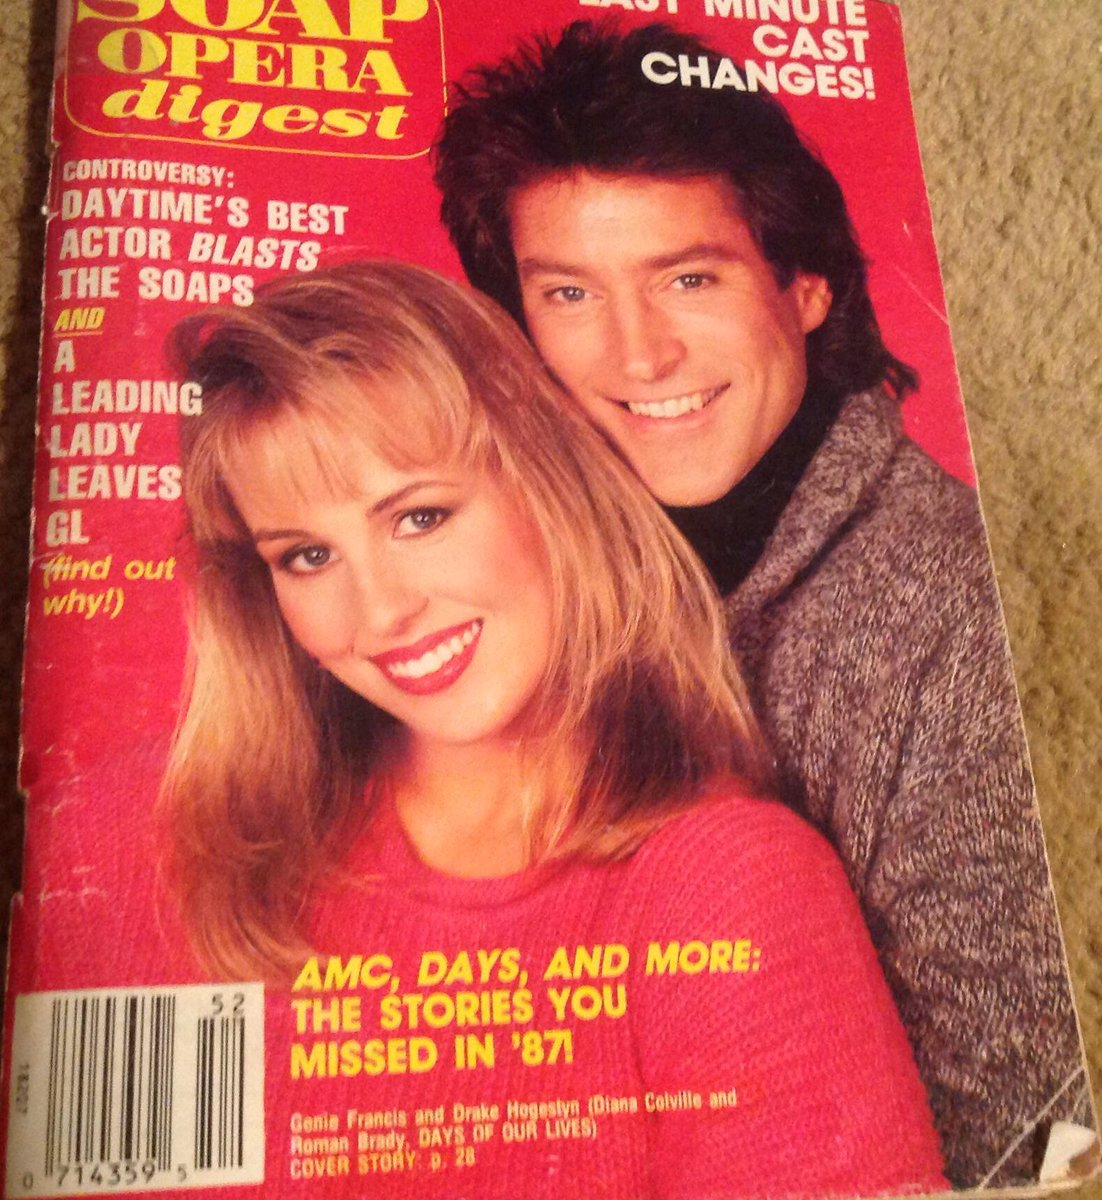 @DrakeHogestyn @GenieFrancis #TBT One of the funnest daytime couples of all time @GenieFans @WeLoveSoapsTV http://t.co/ZTbHYsTjqC